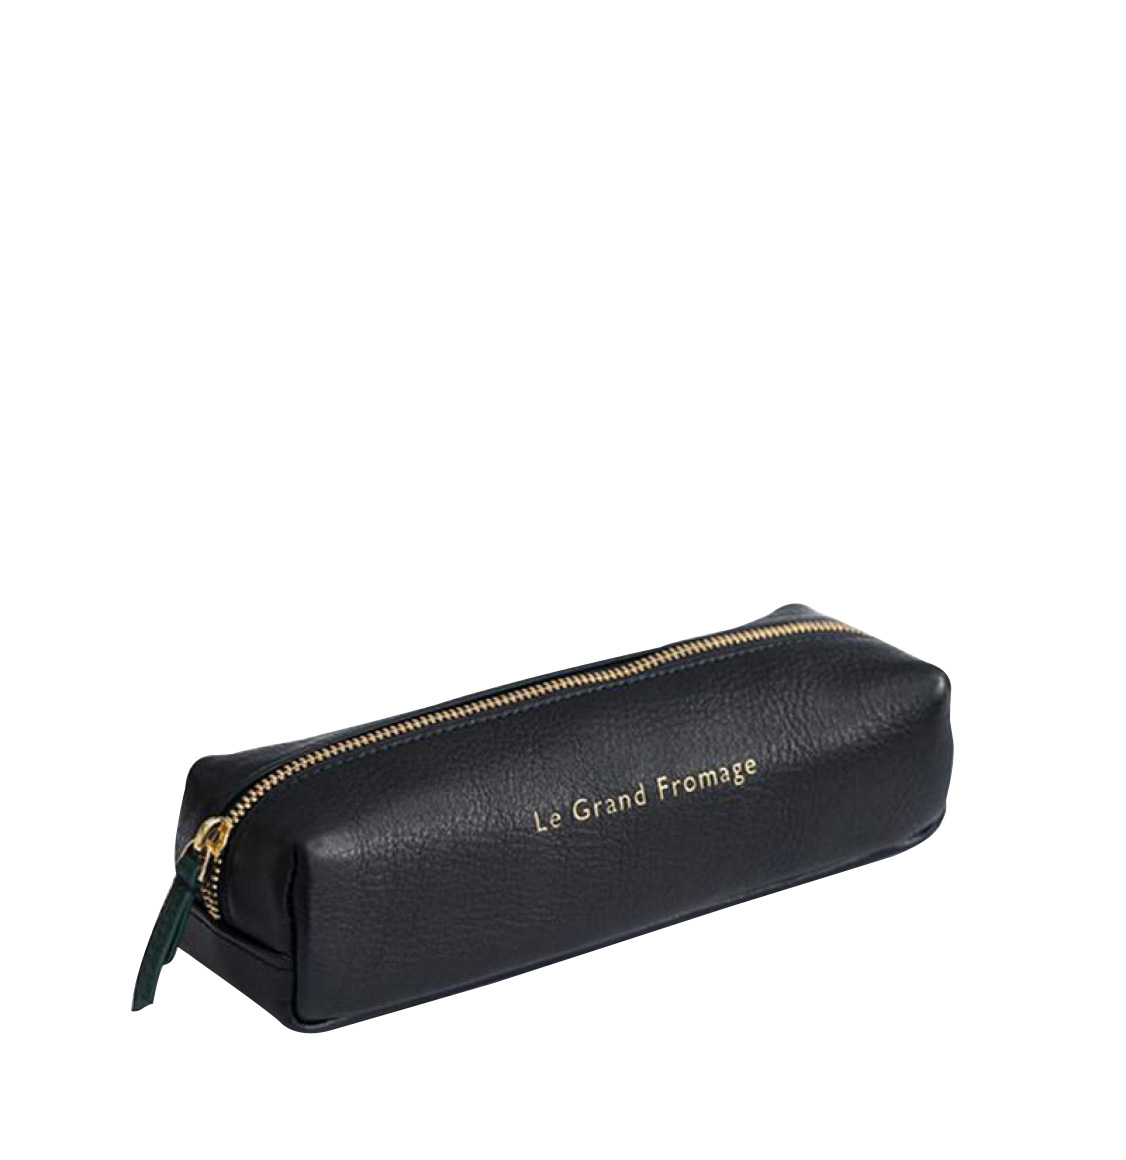 la_grand_fromage_pencil_case_navy_blue_curate_design_items_the_project_garments_a